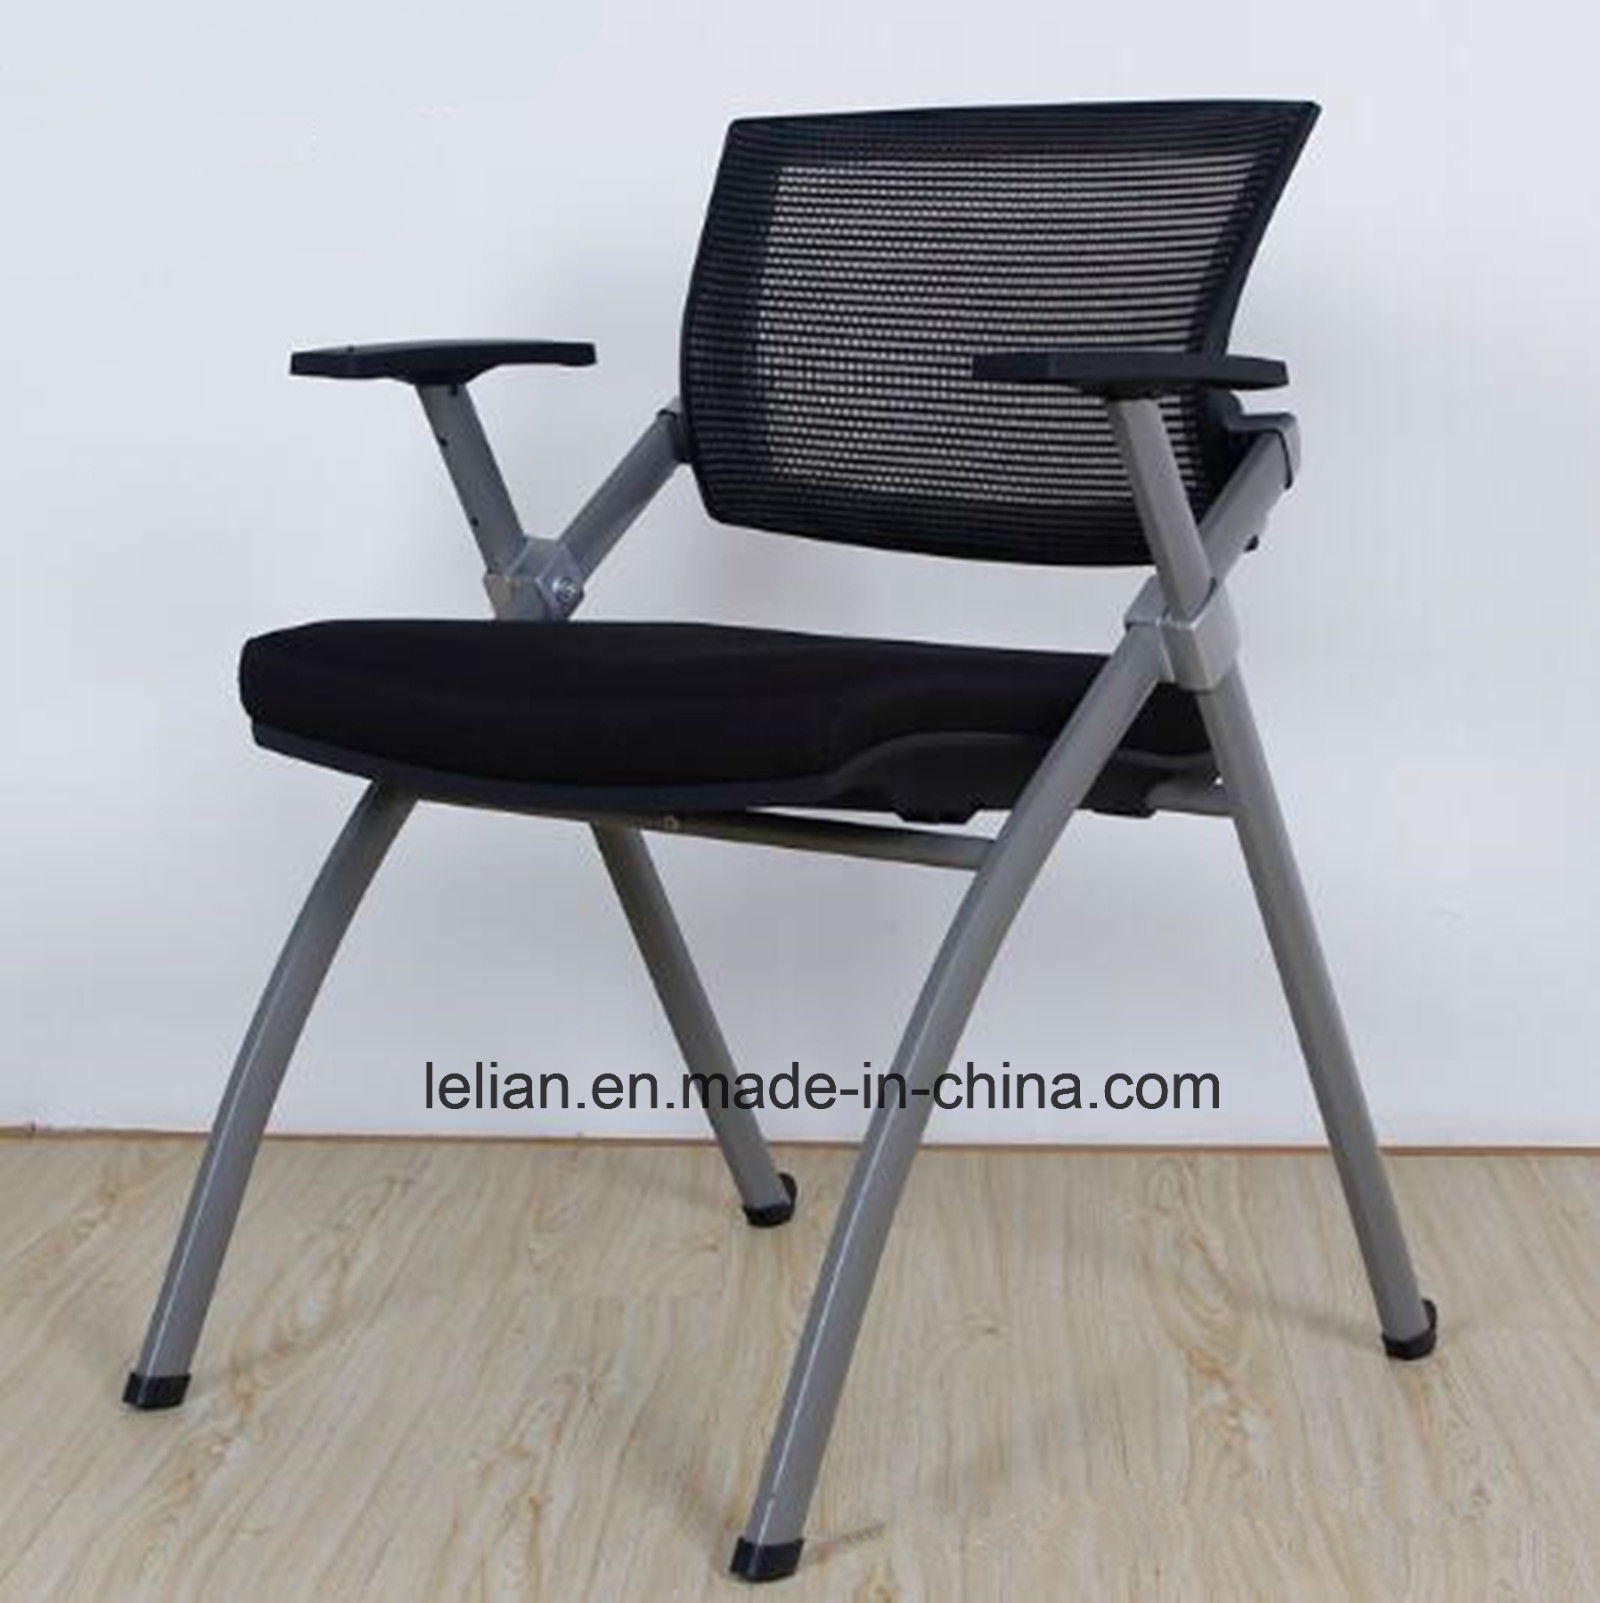 Foldable Office Chair Hot Item High Quality Study Furniture Foldable Meeting Chair Office Chair With Writing Board